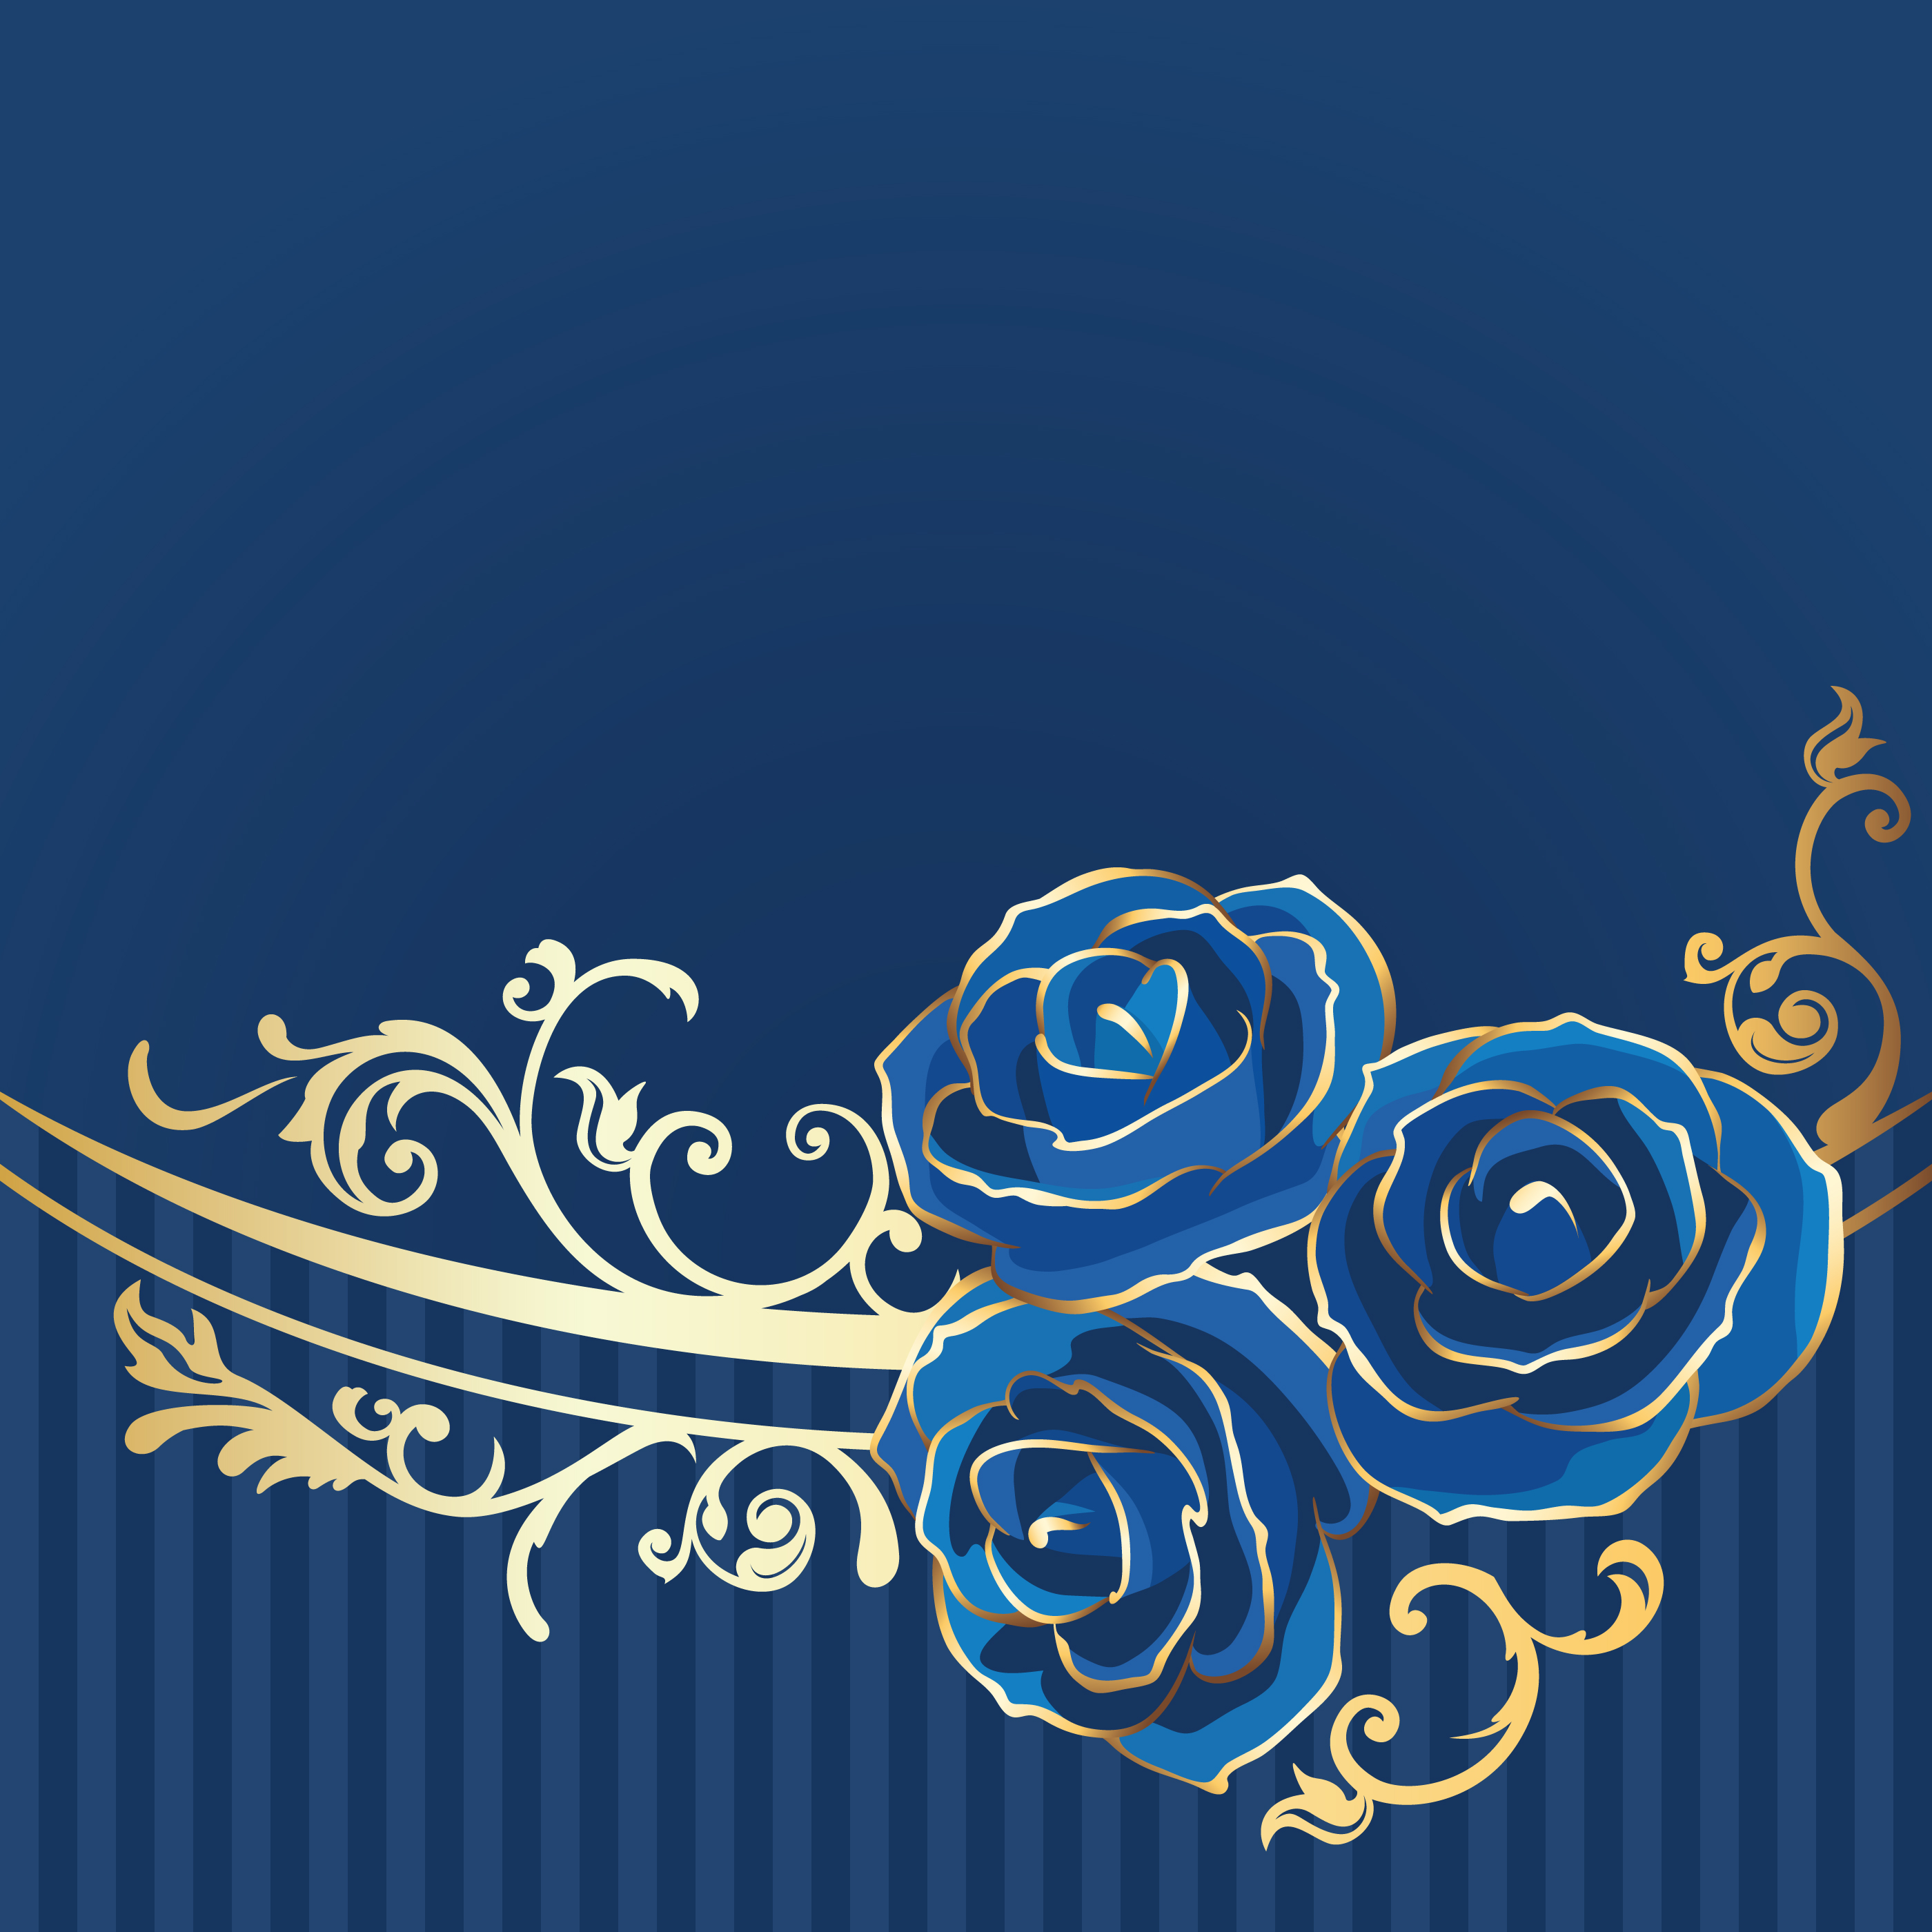 Blue rose flower background